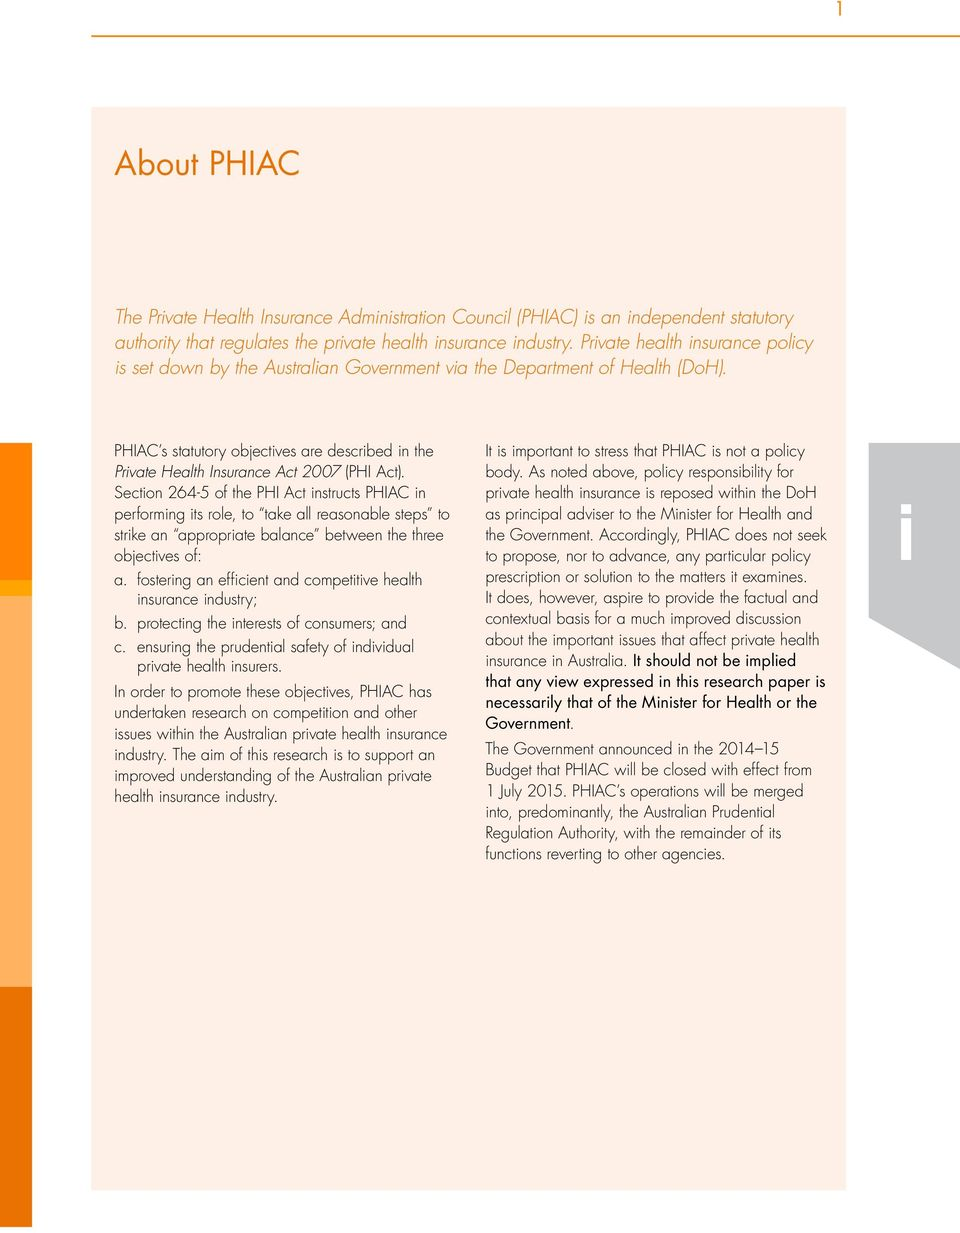 PHIAC s statutory objectives are described in the Private Health Insurance Act 2007 (PHI Act).